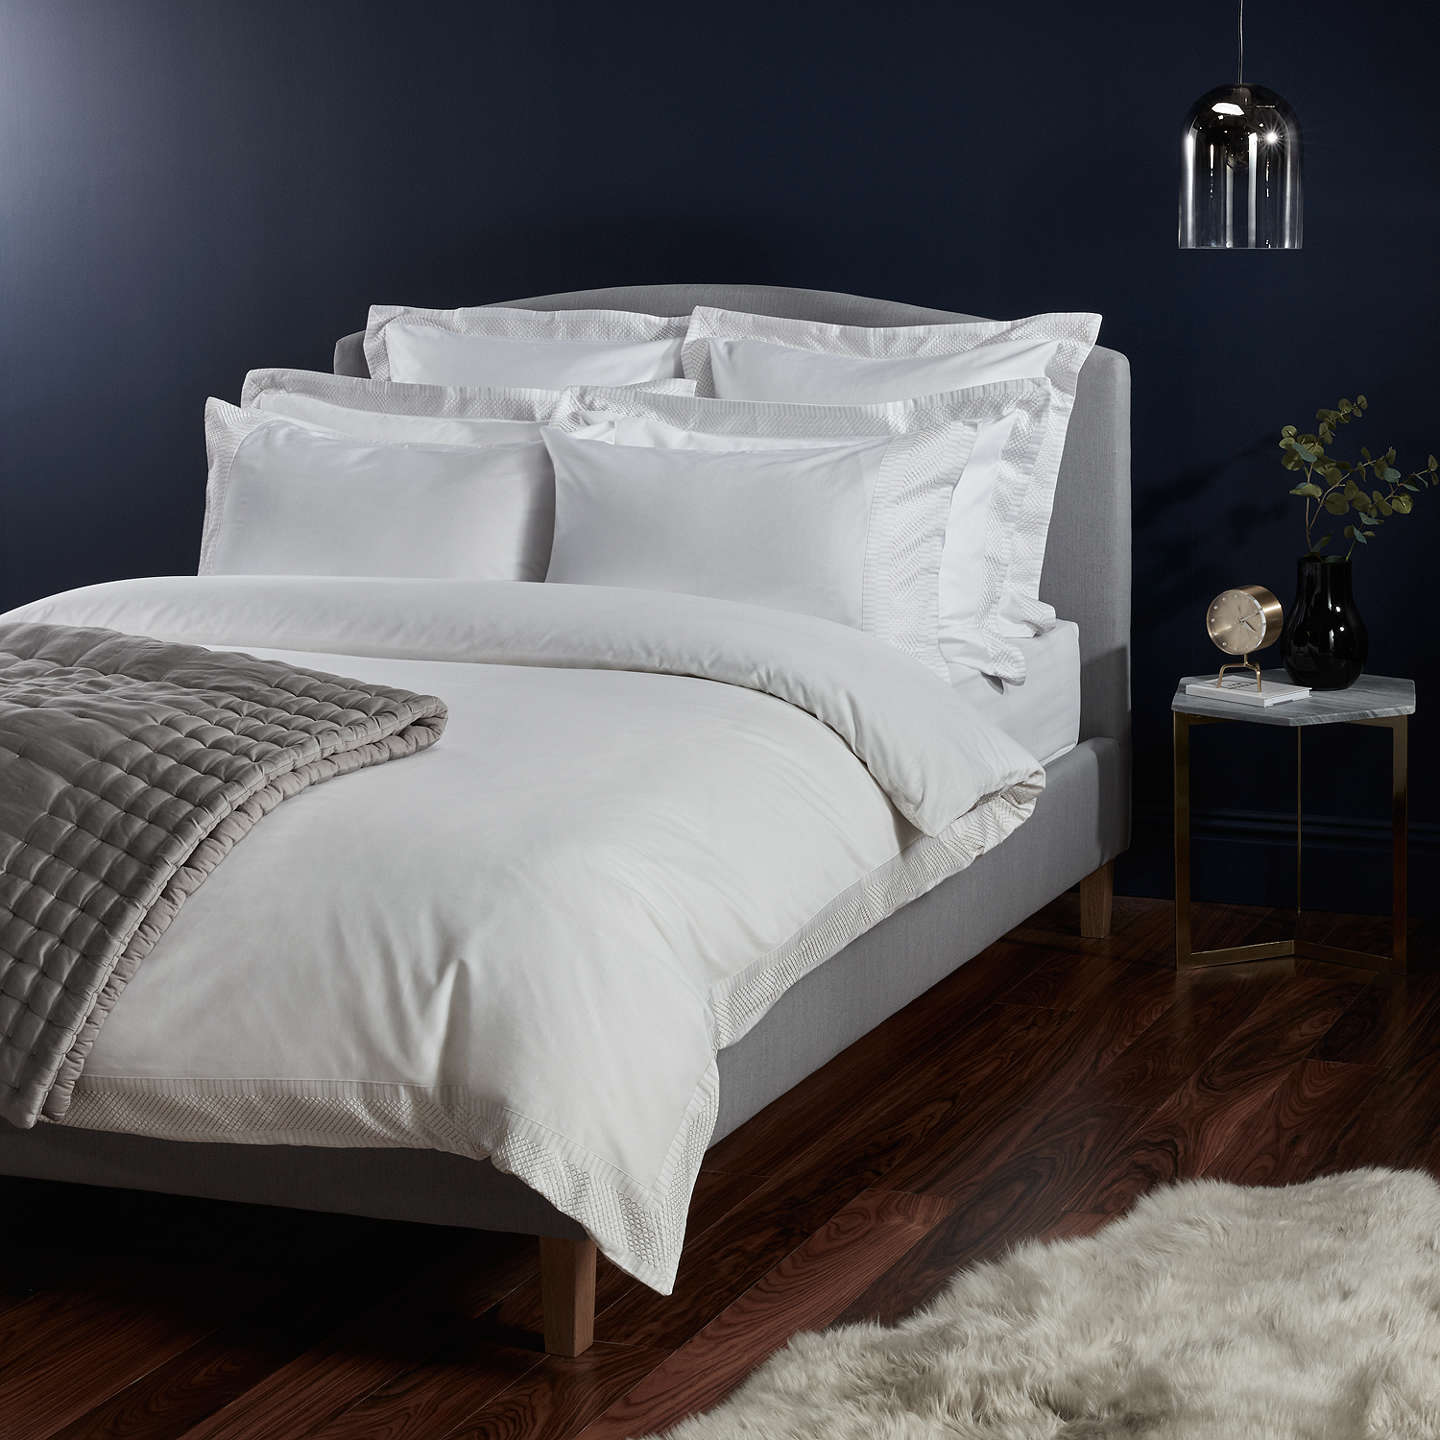 BuyJohn Lewis Treviso Cotton Duvet Cover, King Online At Johnlewis.com ...